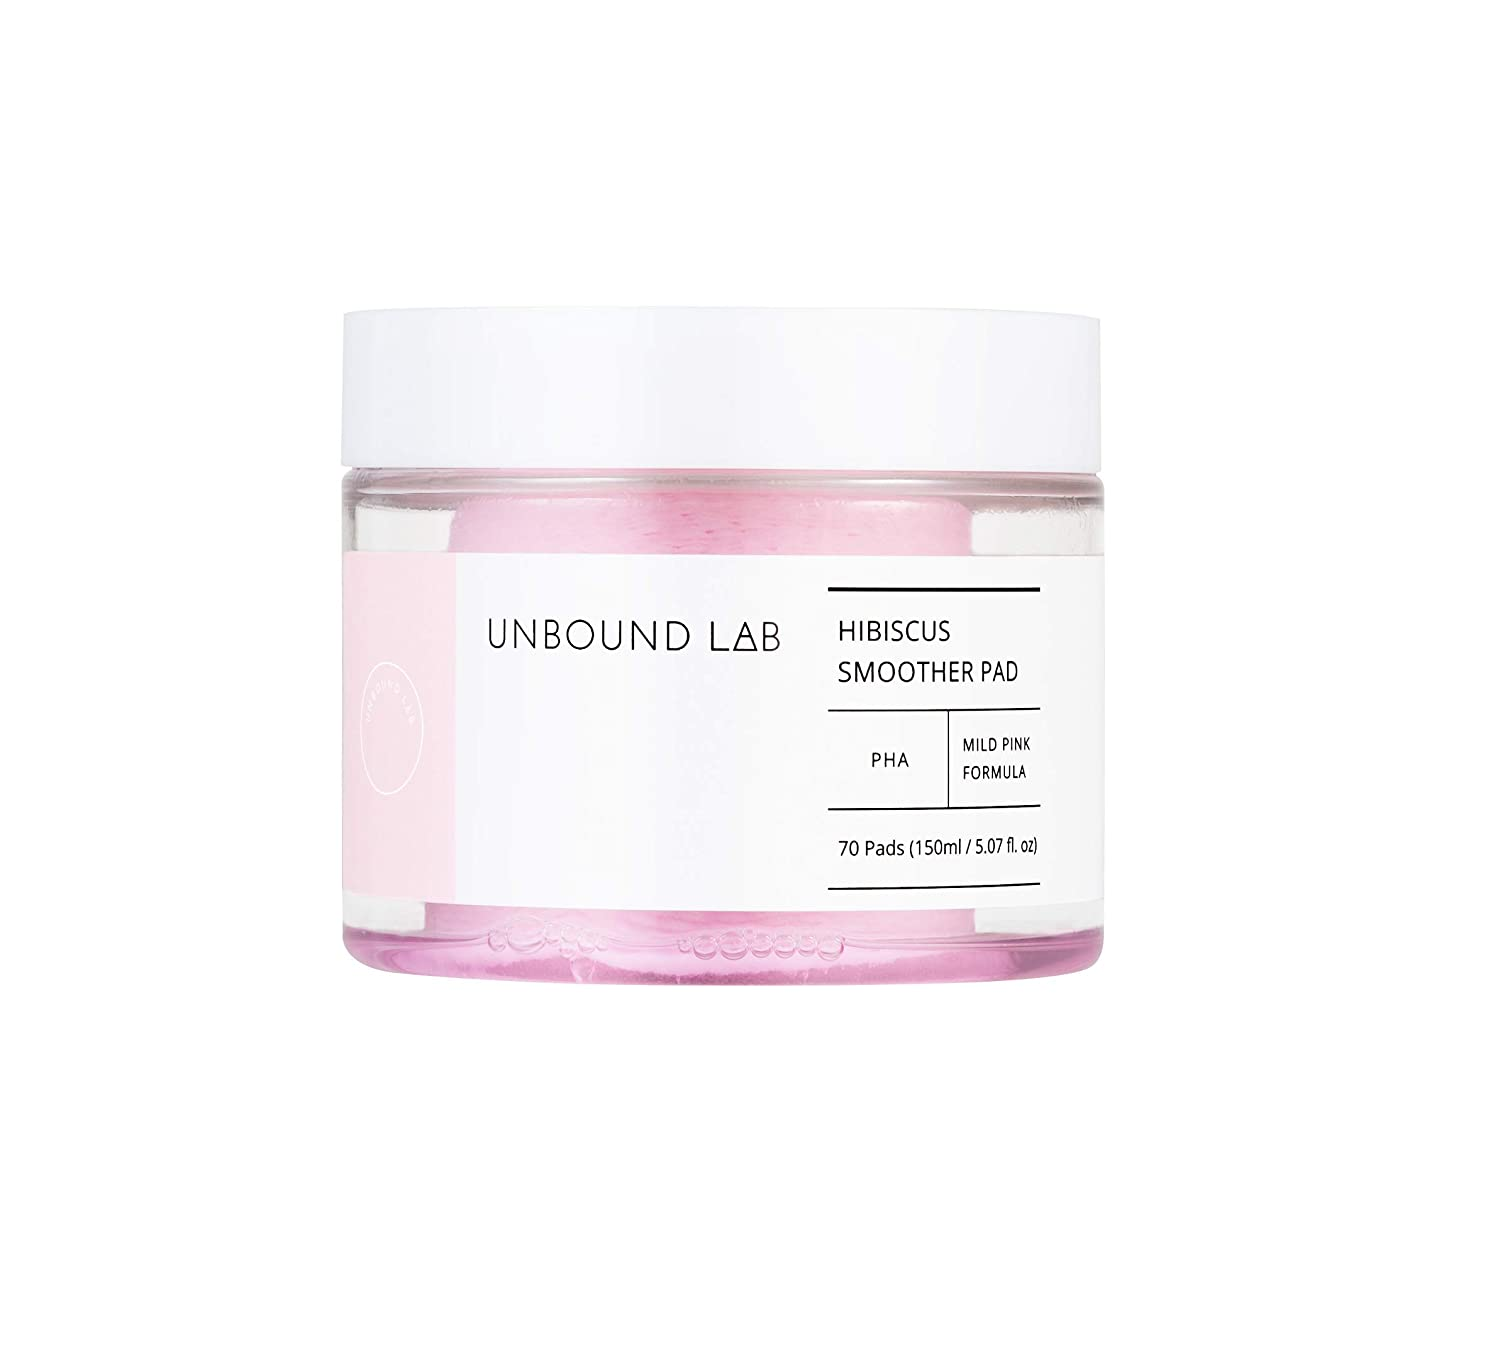 UNBOUND LAB Hibiscus Smoother Pad 70 Pads 150ml - Daily Peeling Treatment Pads with 88% Hibiscus Flower Extract, Kbeauty Skincare